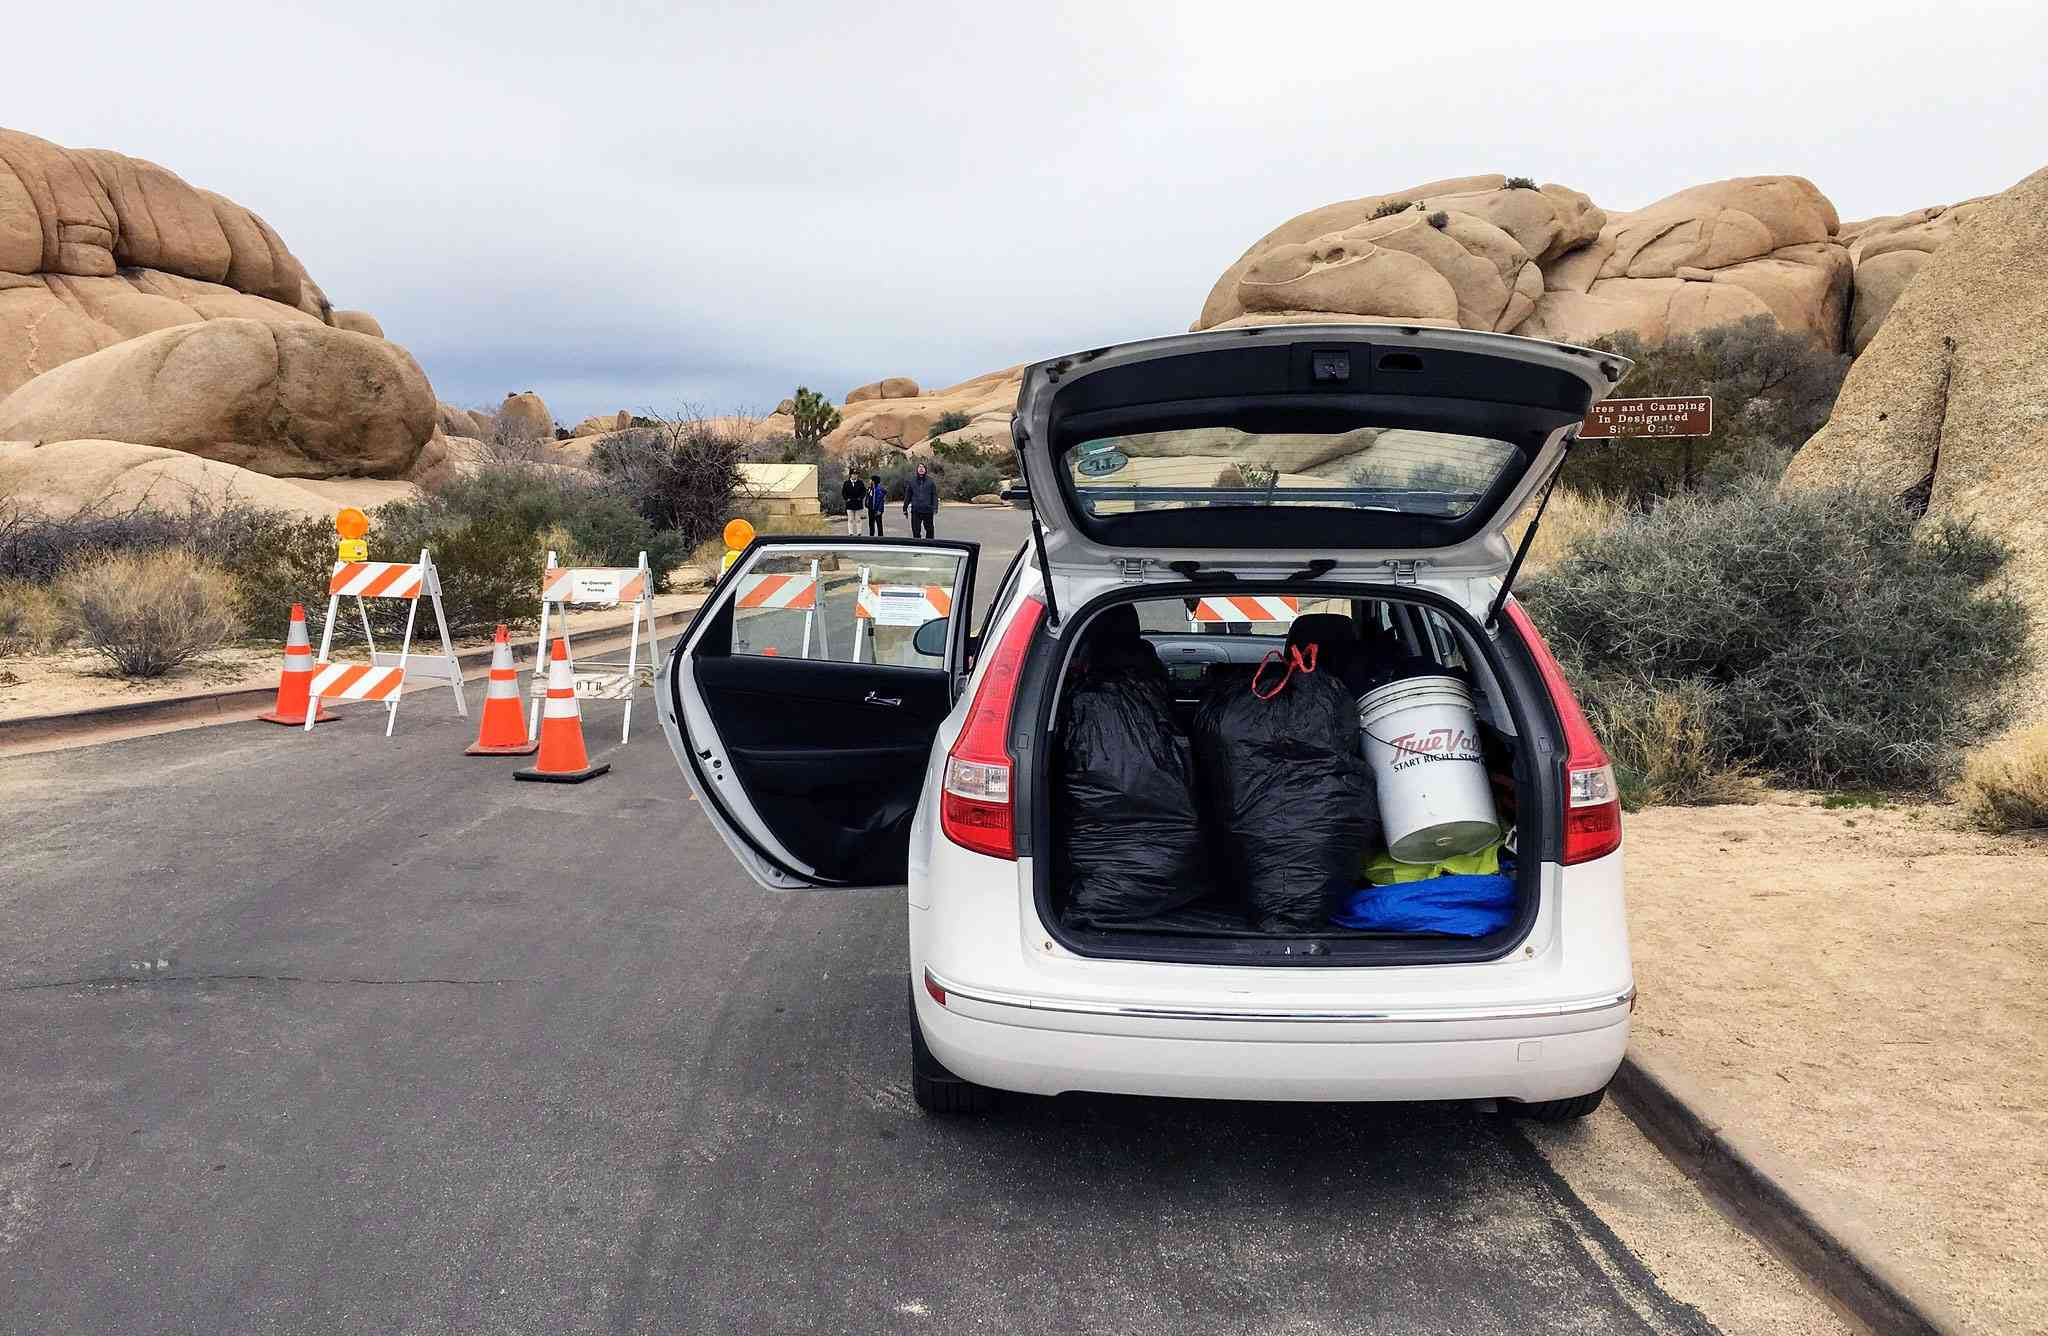 A volunteer's car filled with trash collected at shuttered Joshua Tree National Park.